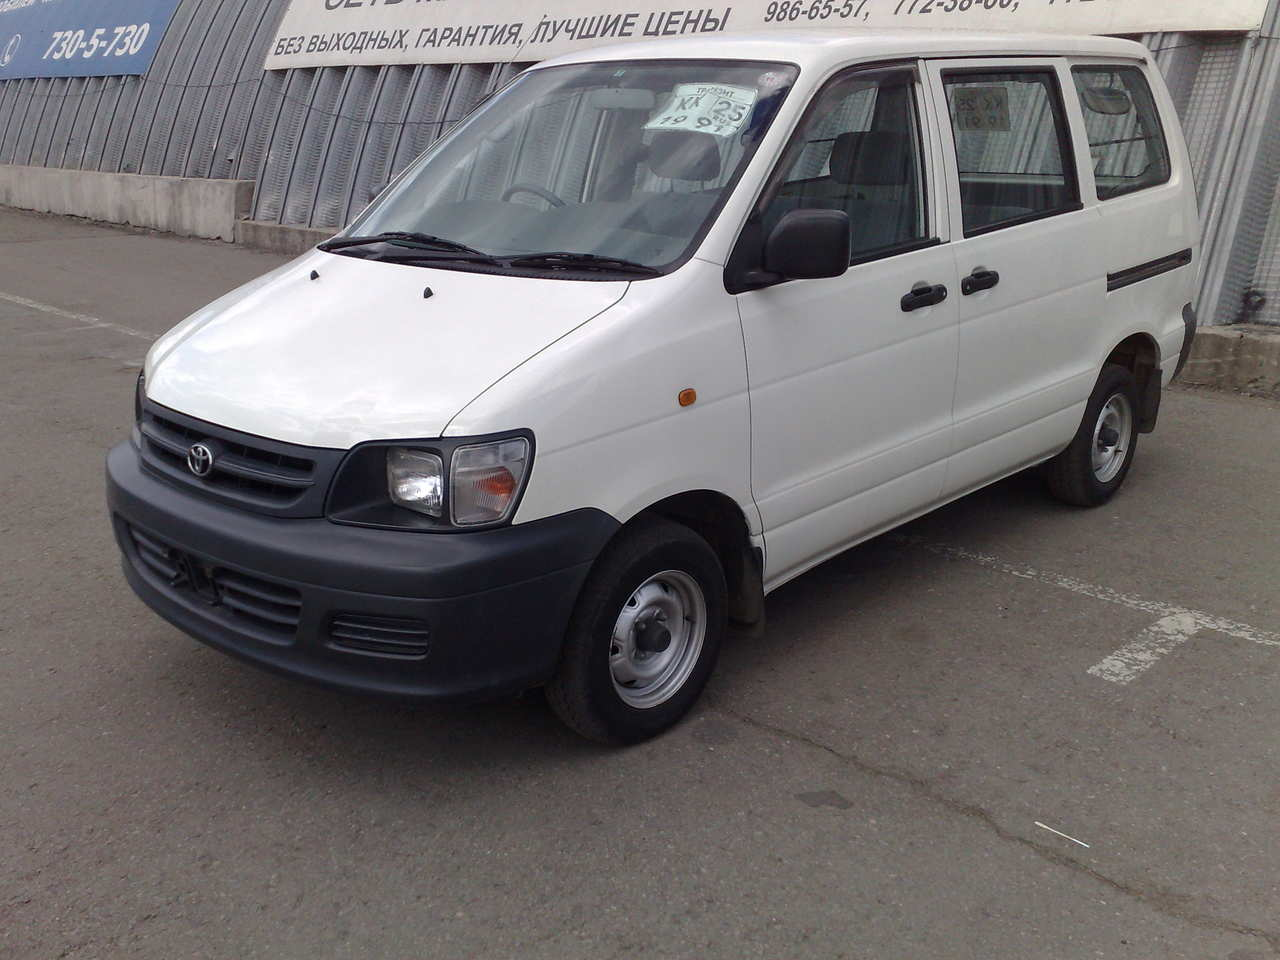 Toyota       townace    diesel repair manual download